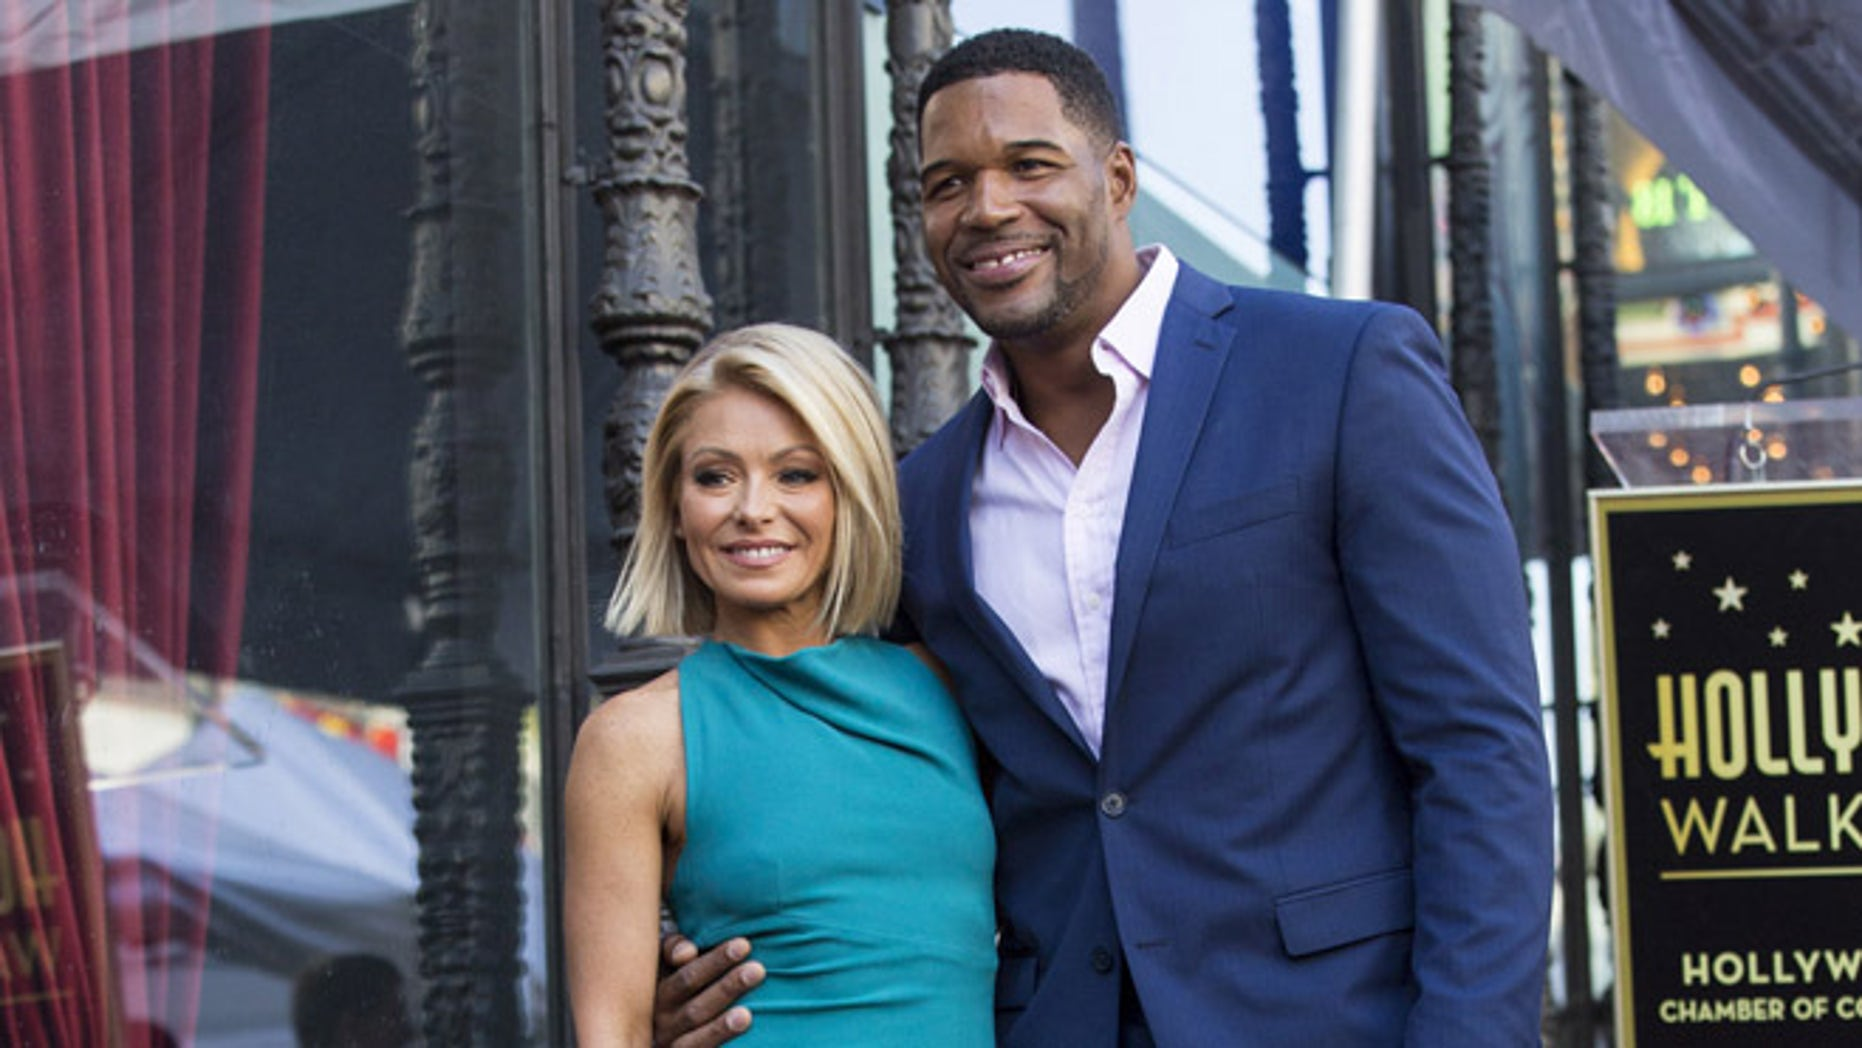 Michael Strahan joins Kelly Ripa as she receives a star on the Hollywood Walk of Fame in 2015.